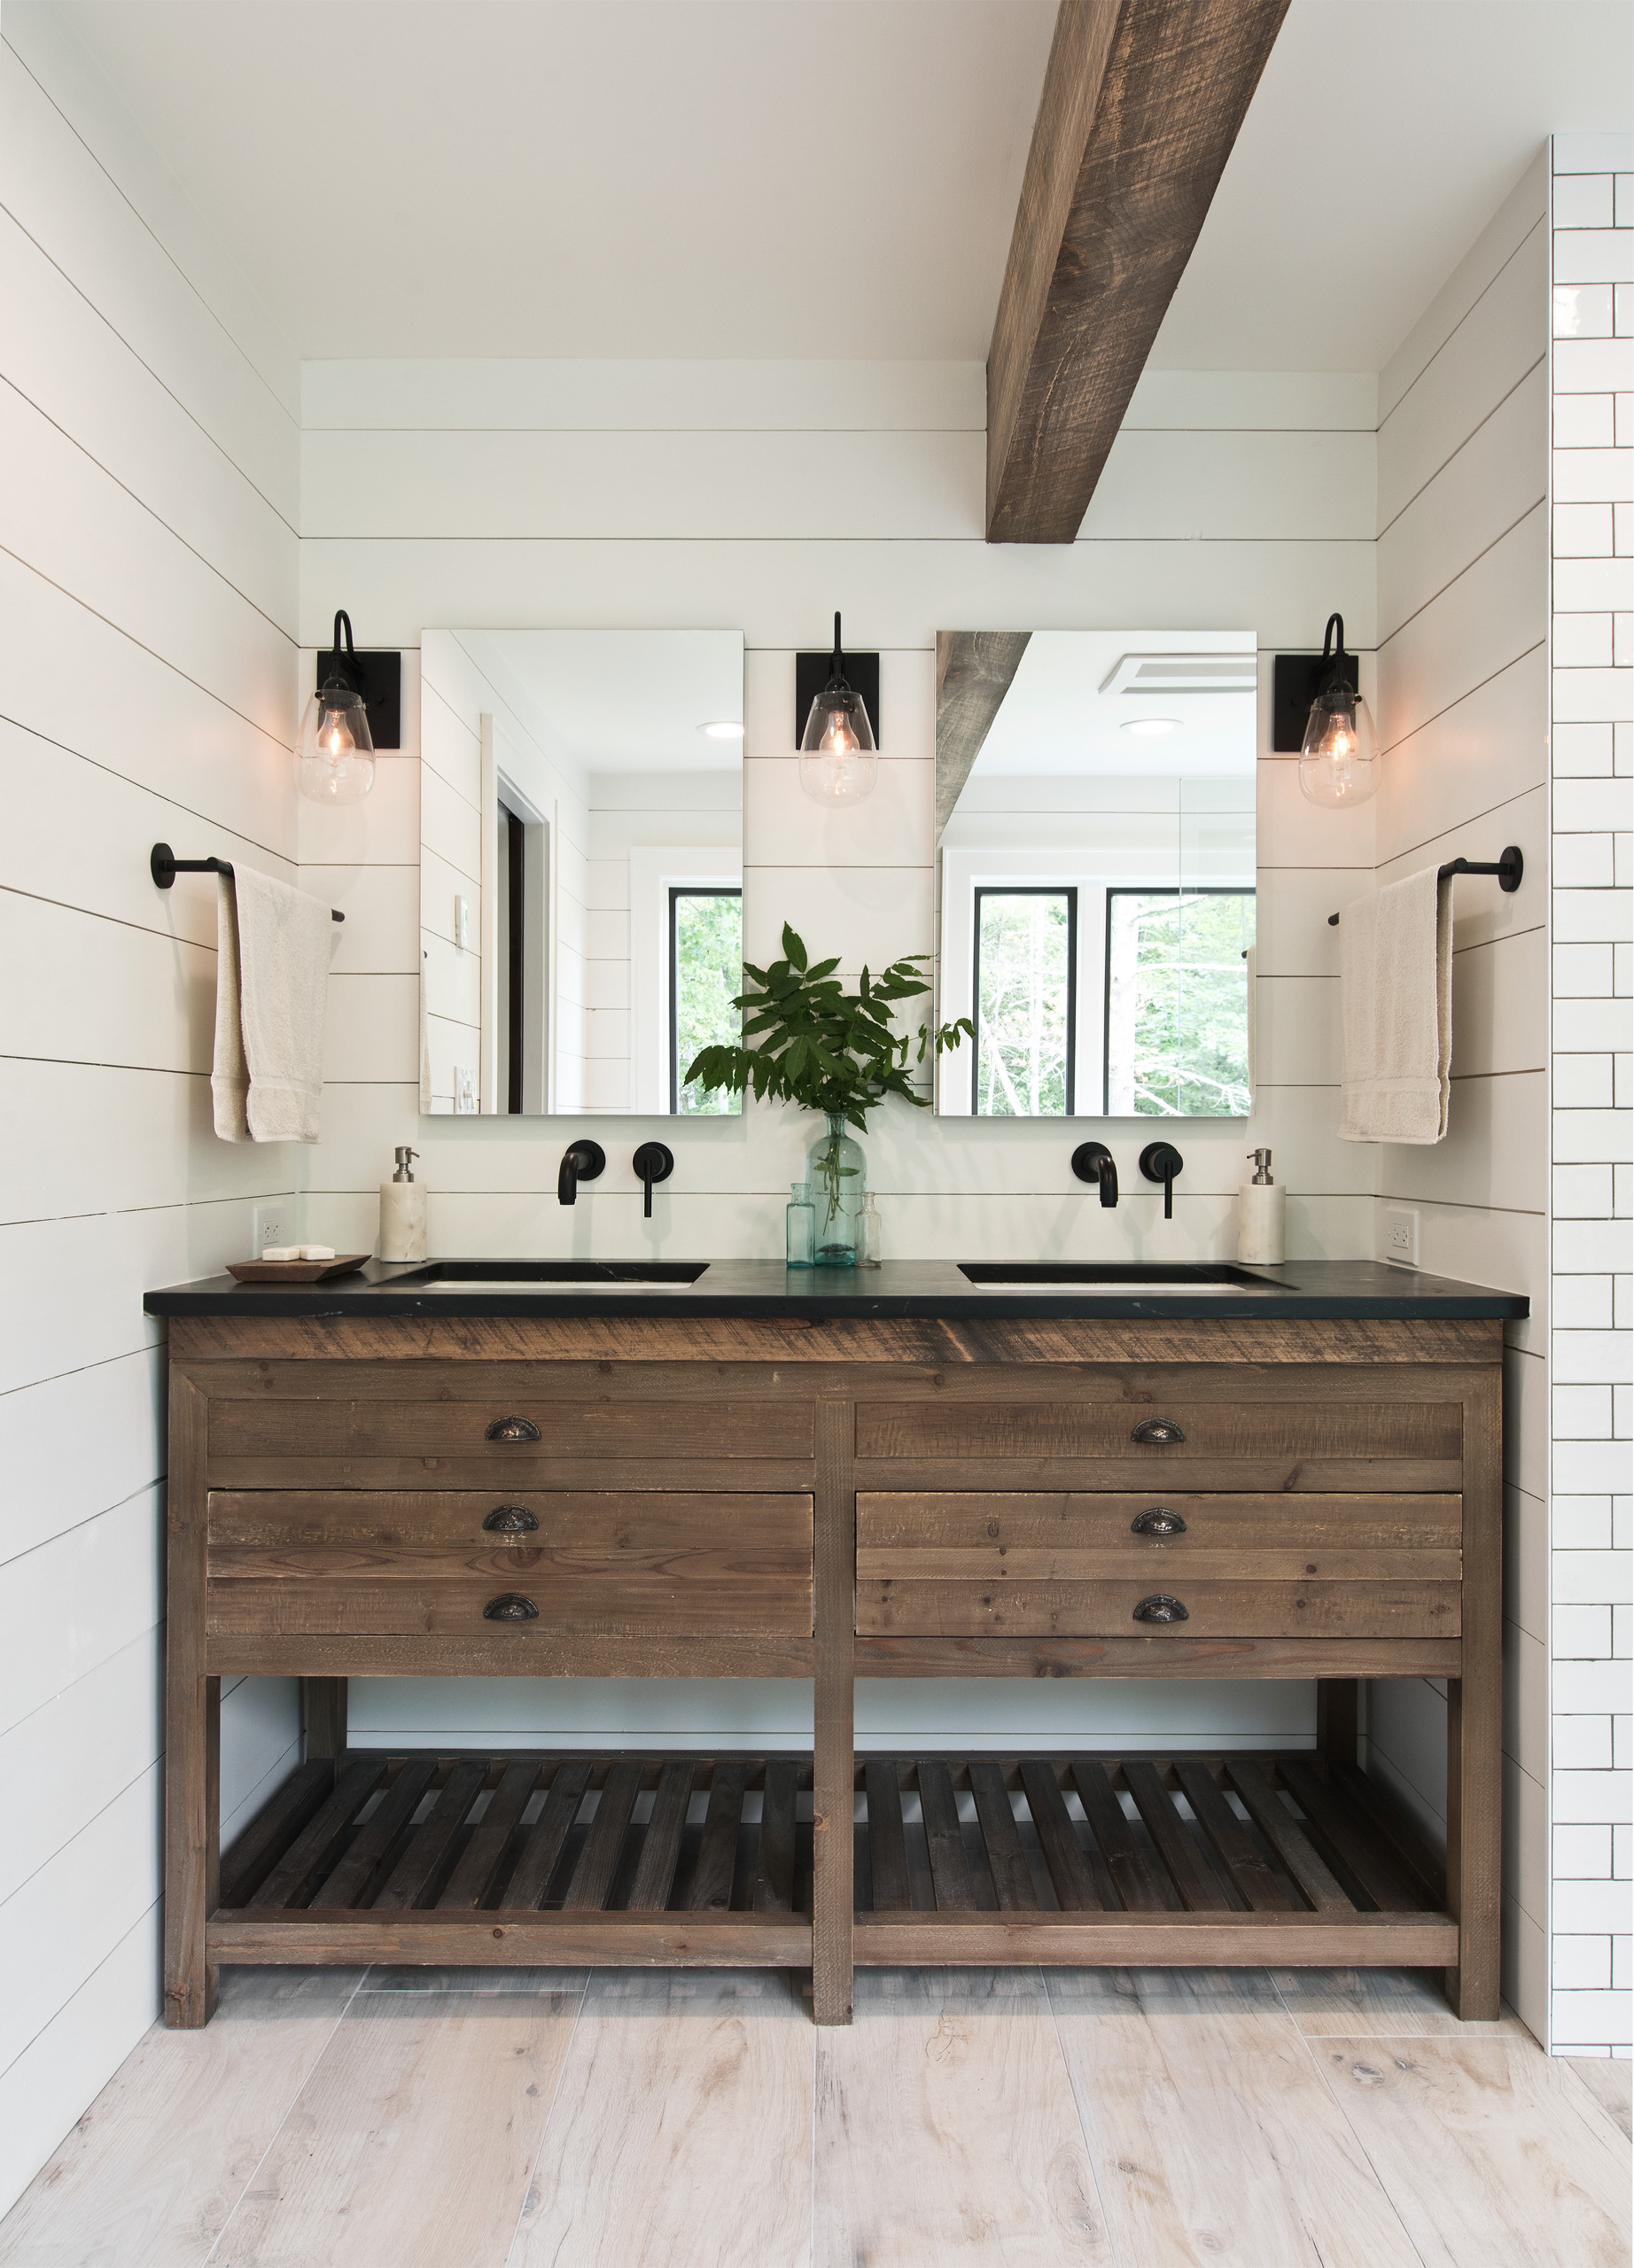 75 Beautiful White Tile Bathroom Pictures Ideas February 2021 Houzz